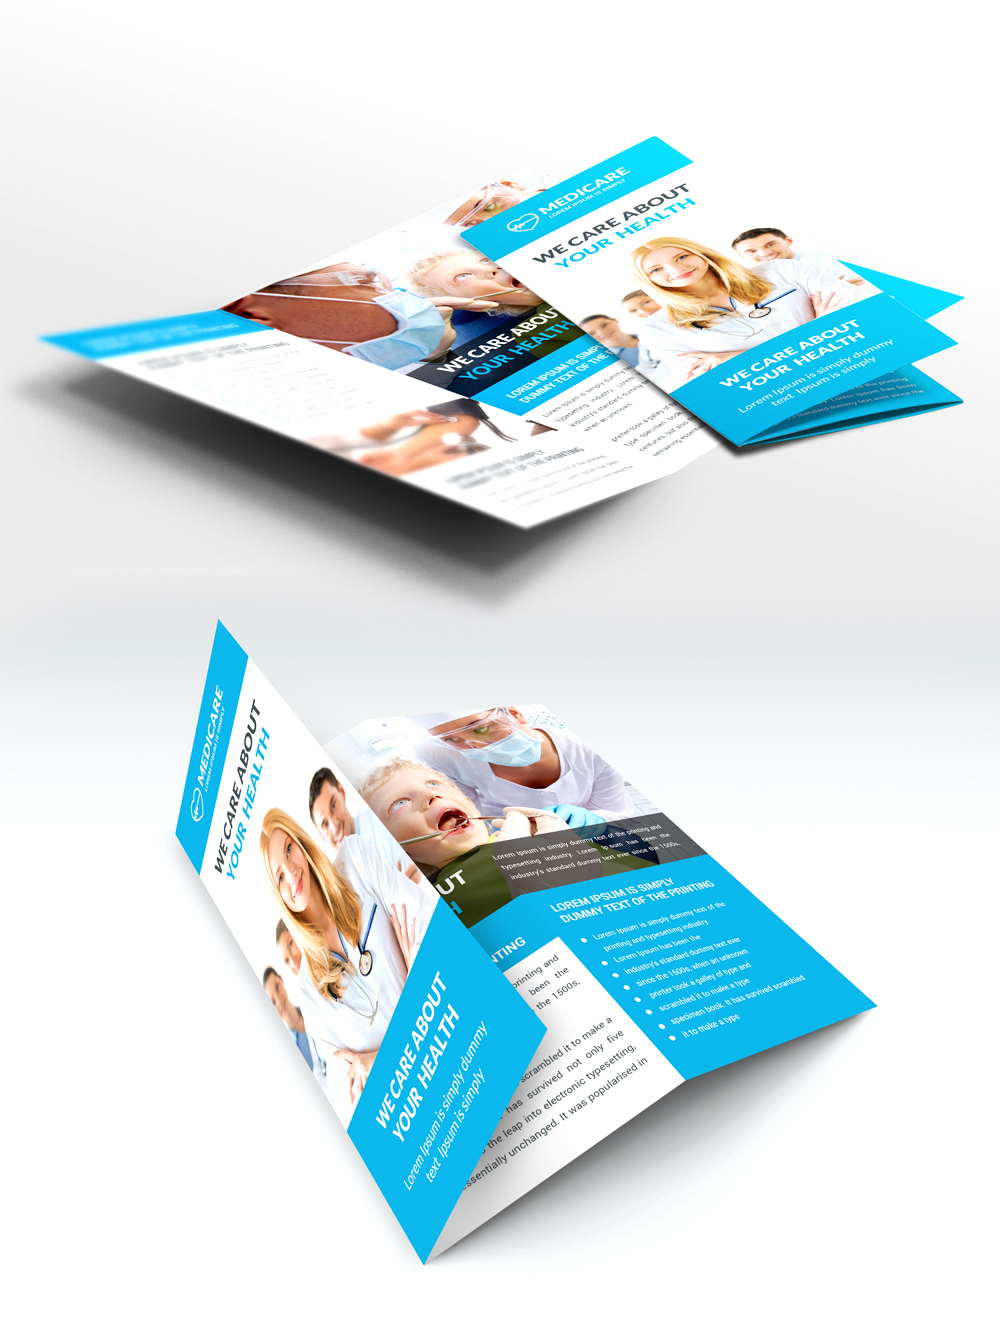 Medical Care And Hospital Trifold Brochure Template Free PSD - Healthcare brochure templates free download